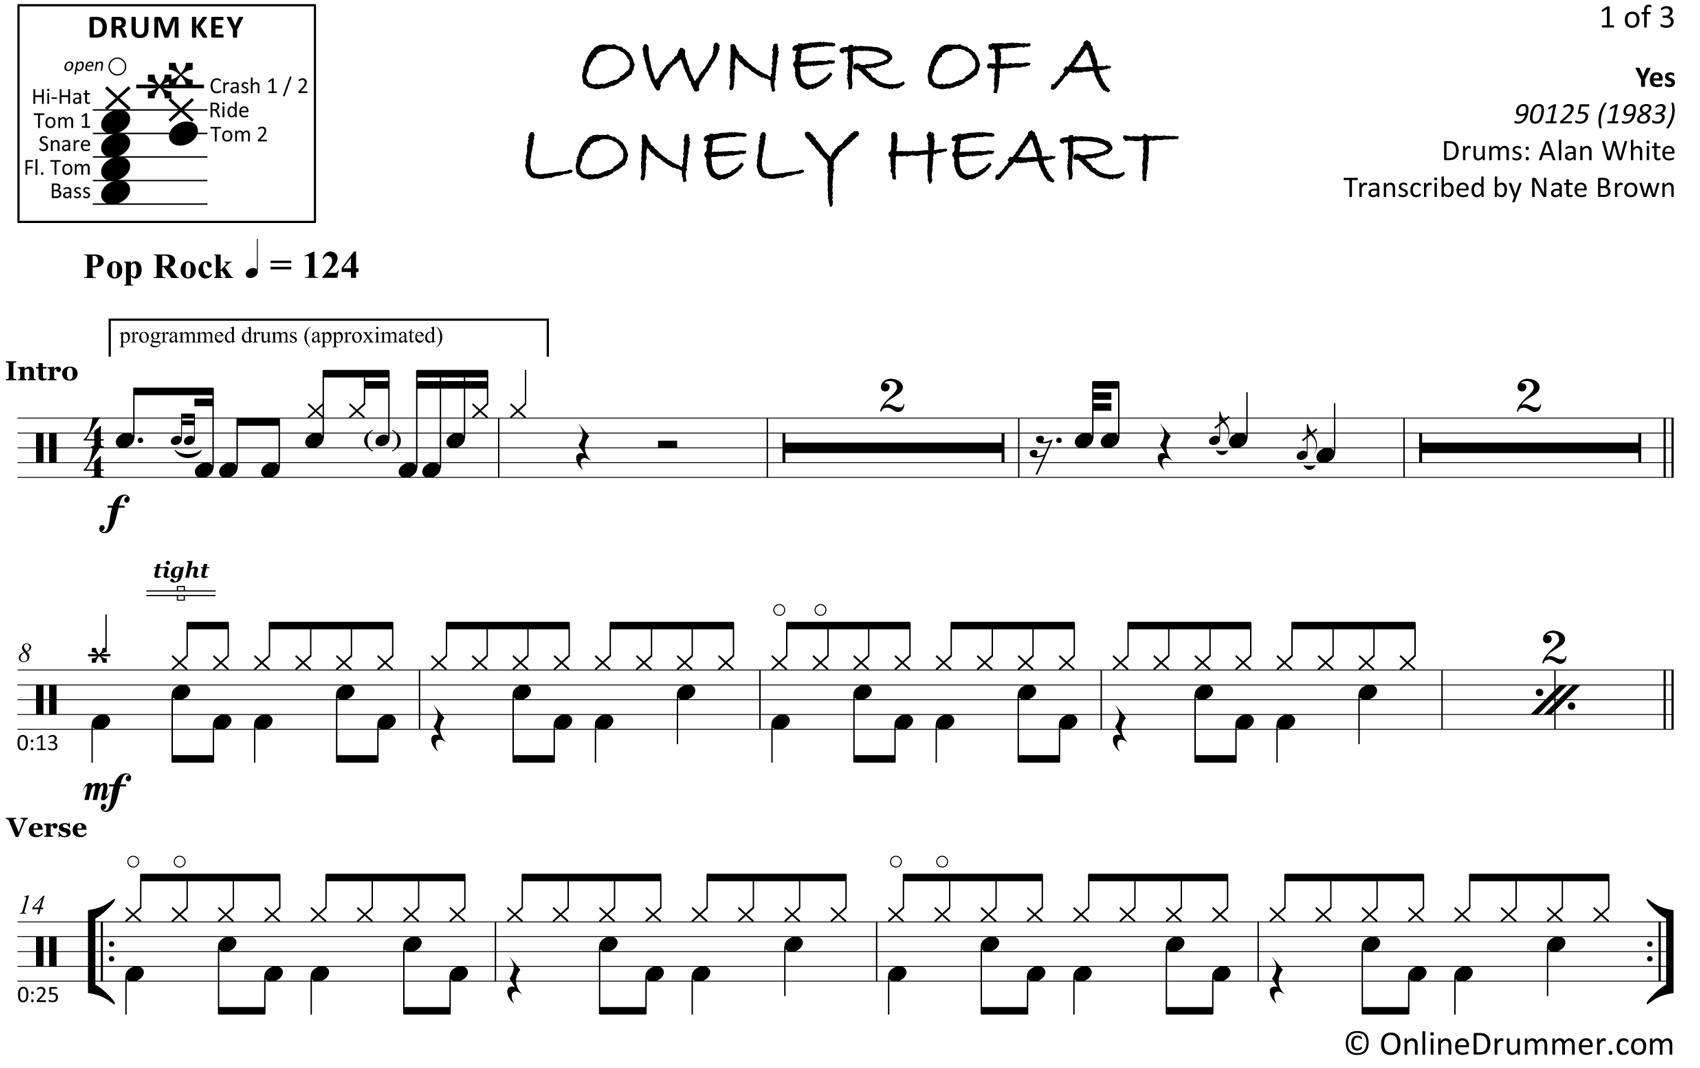 Owner of a Lonely Heart - Yes - Drum Sheet Music